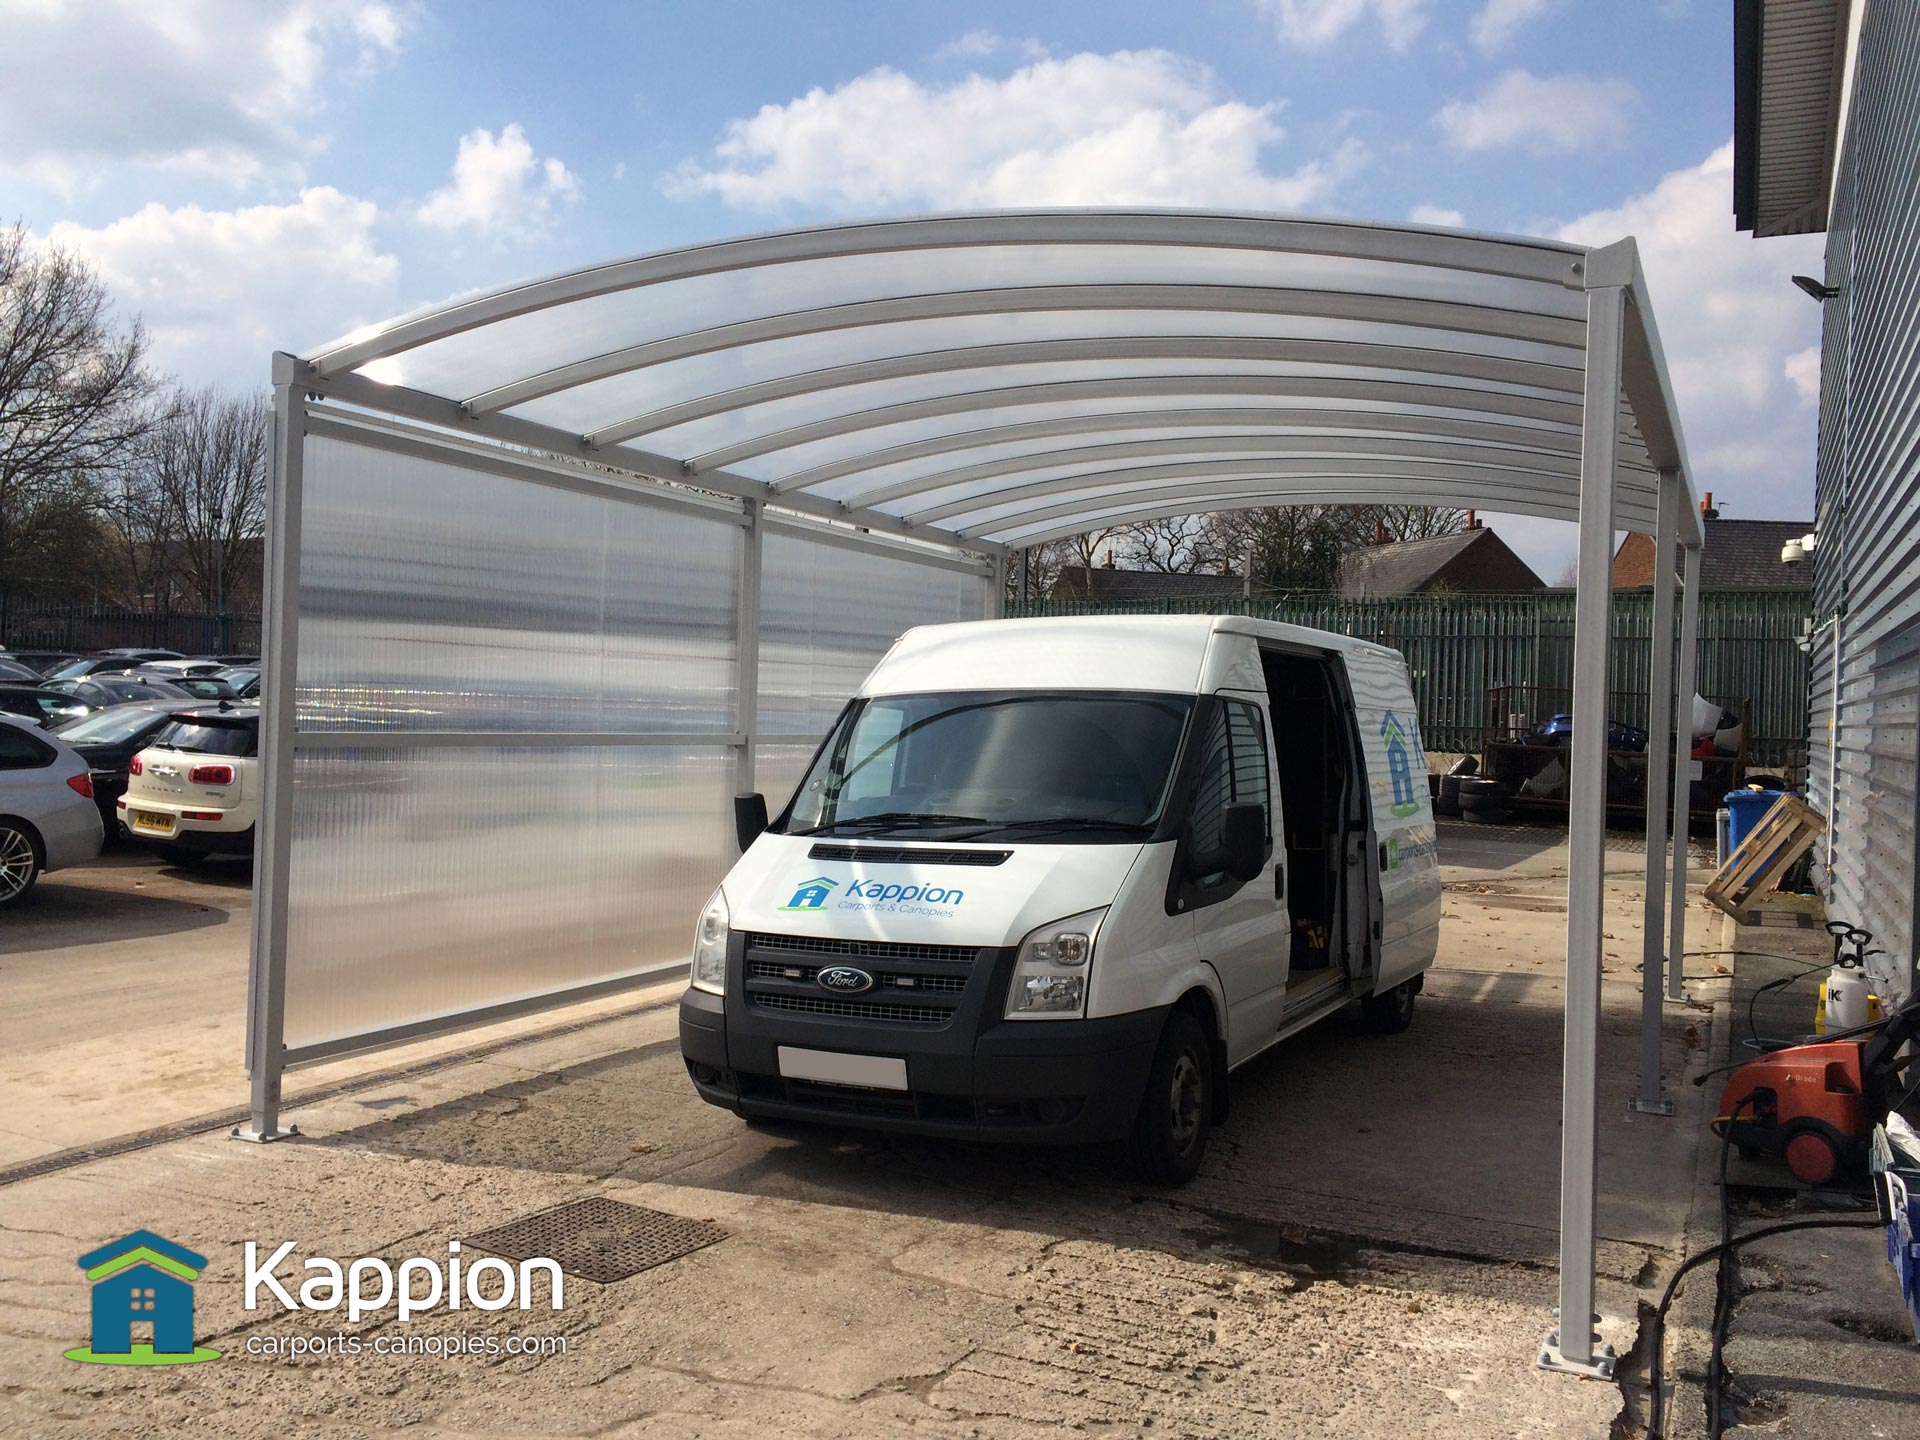 Canopies And Carports : Commercial carport kappion carports canopies